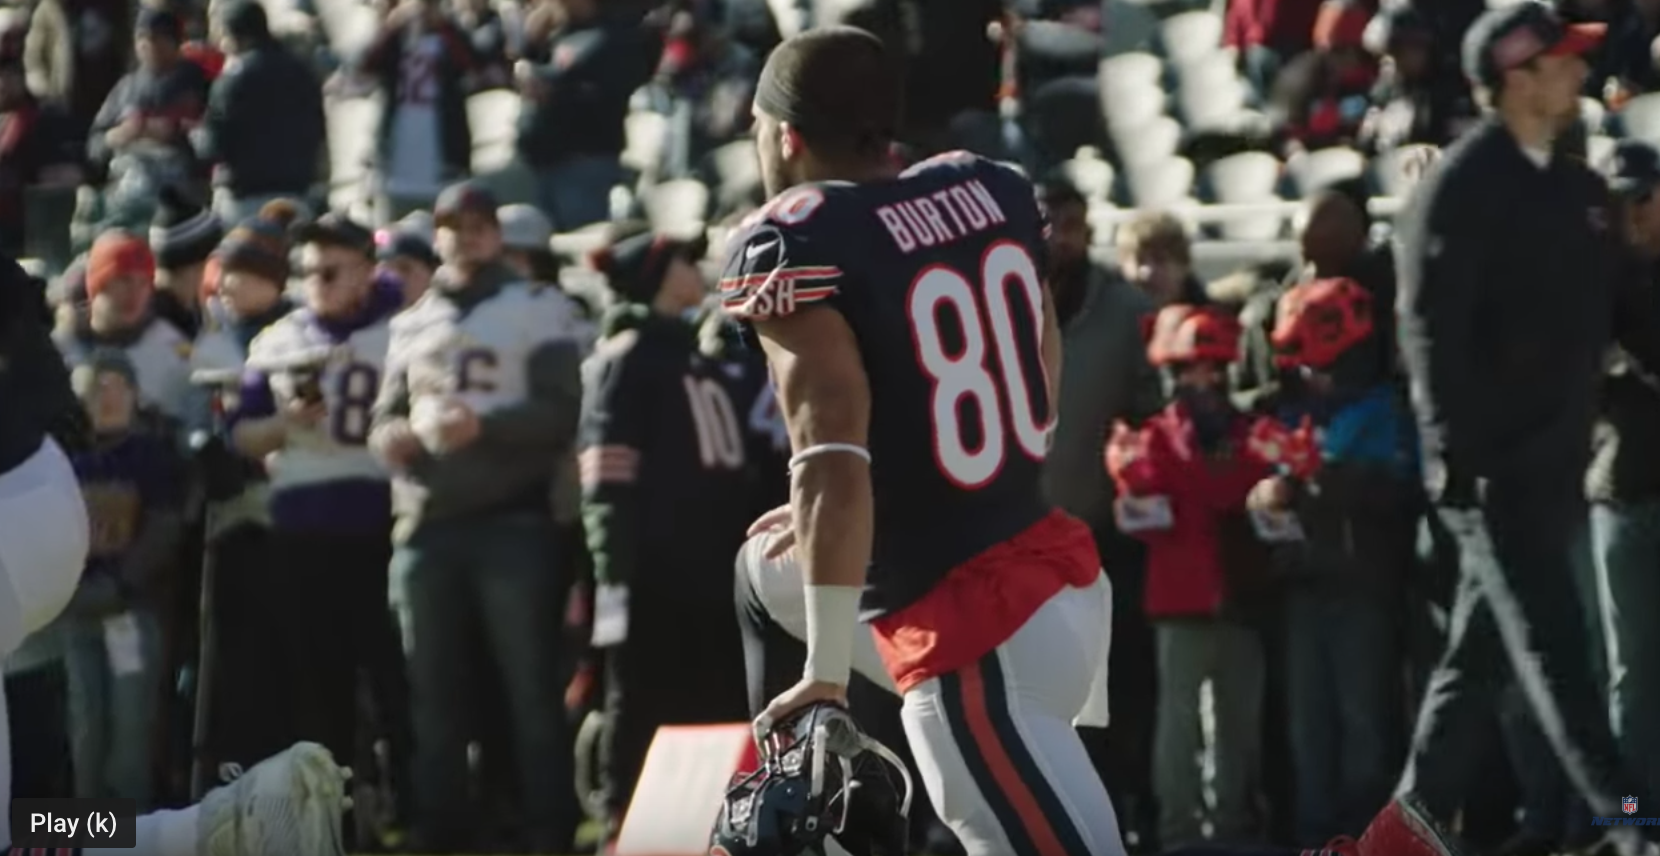 Here we go again. NFL decides to air cop-bashing commercial about police murdering young black men.